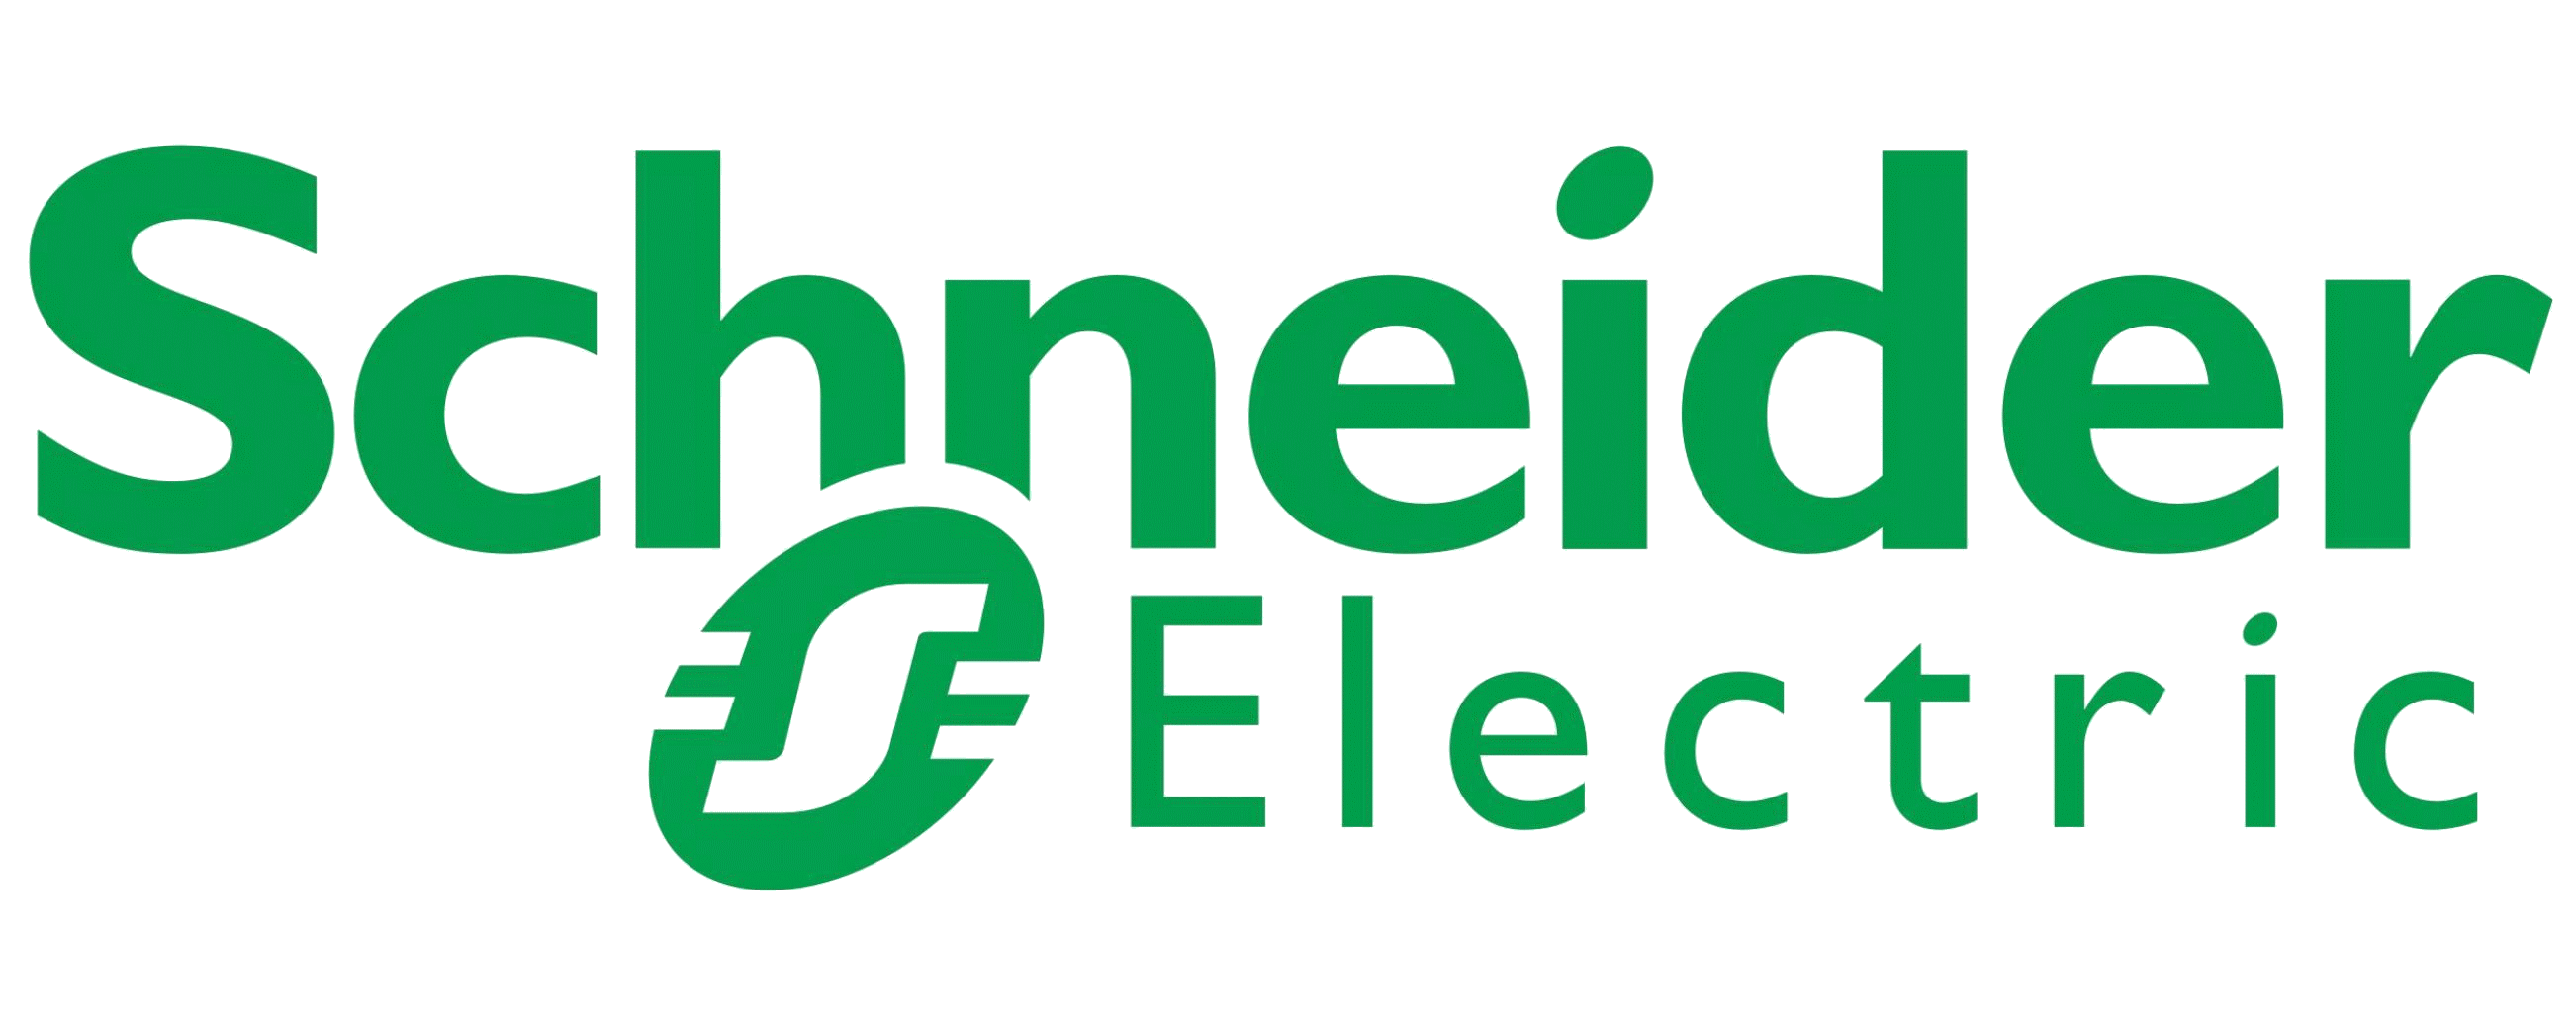 logo-schneider-electric-1